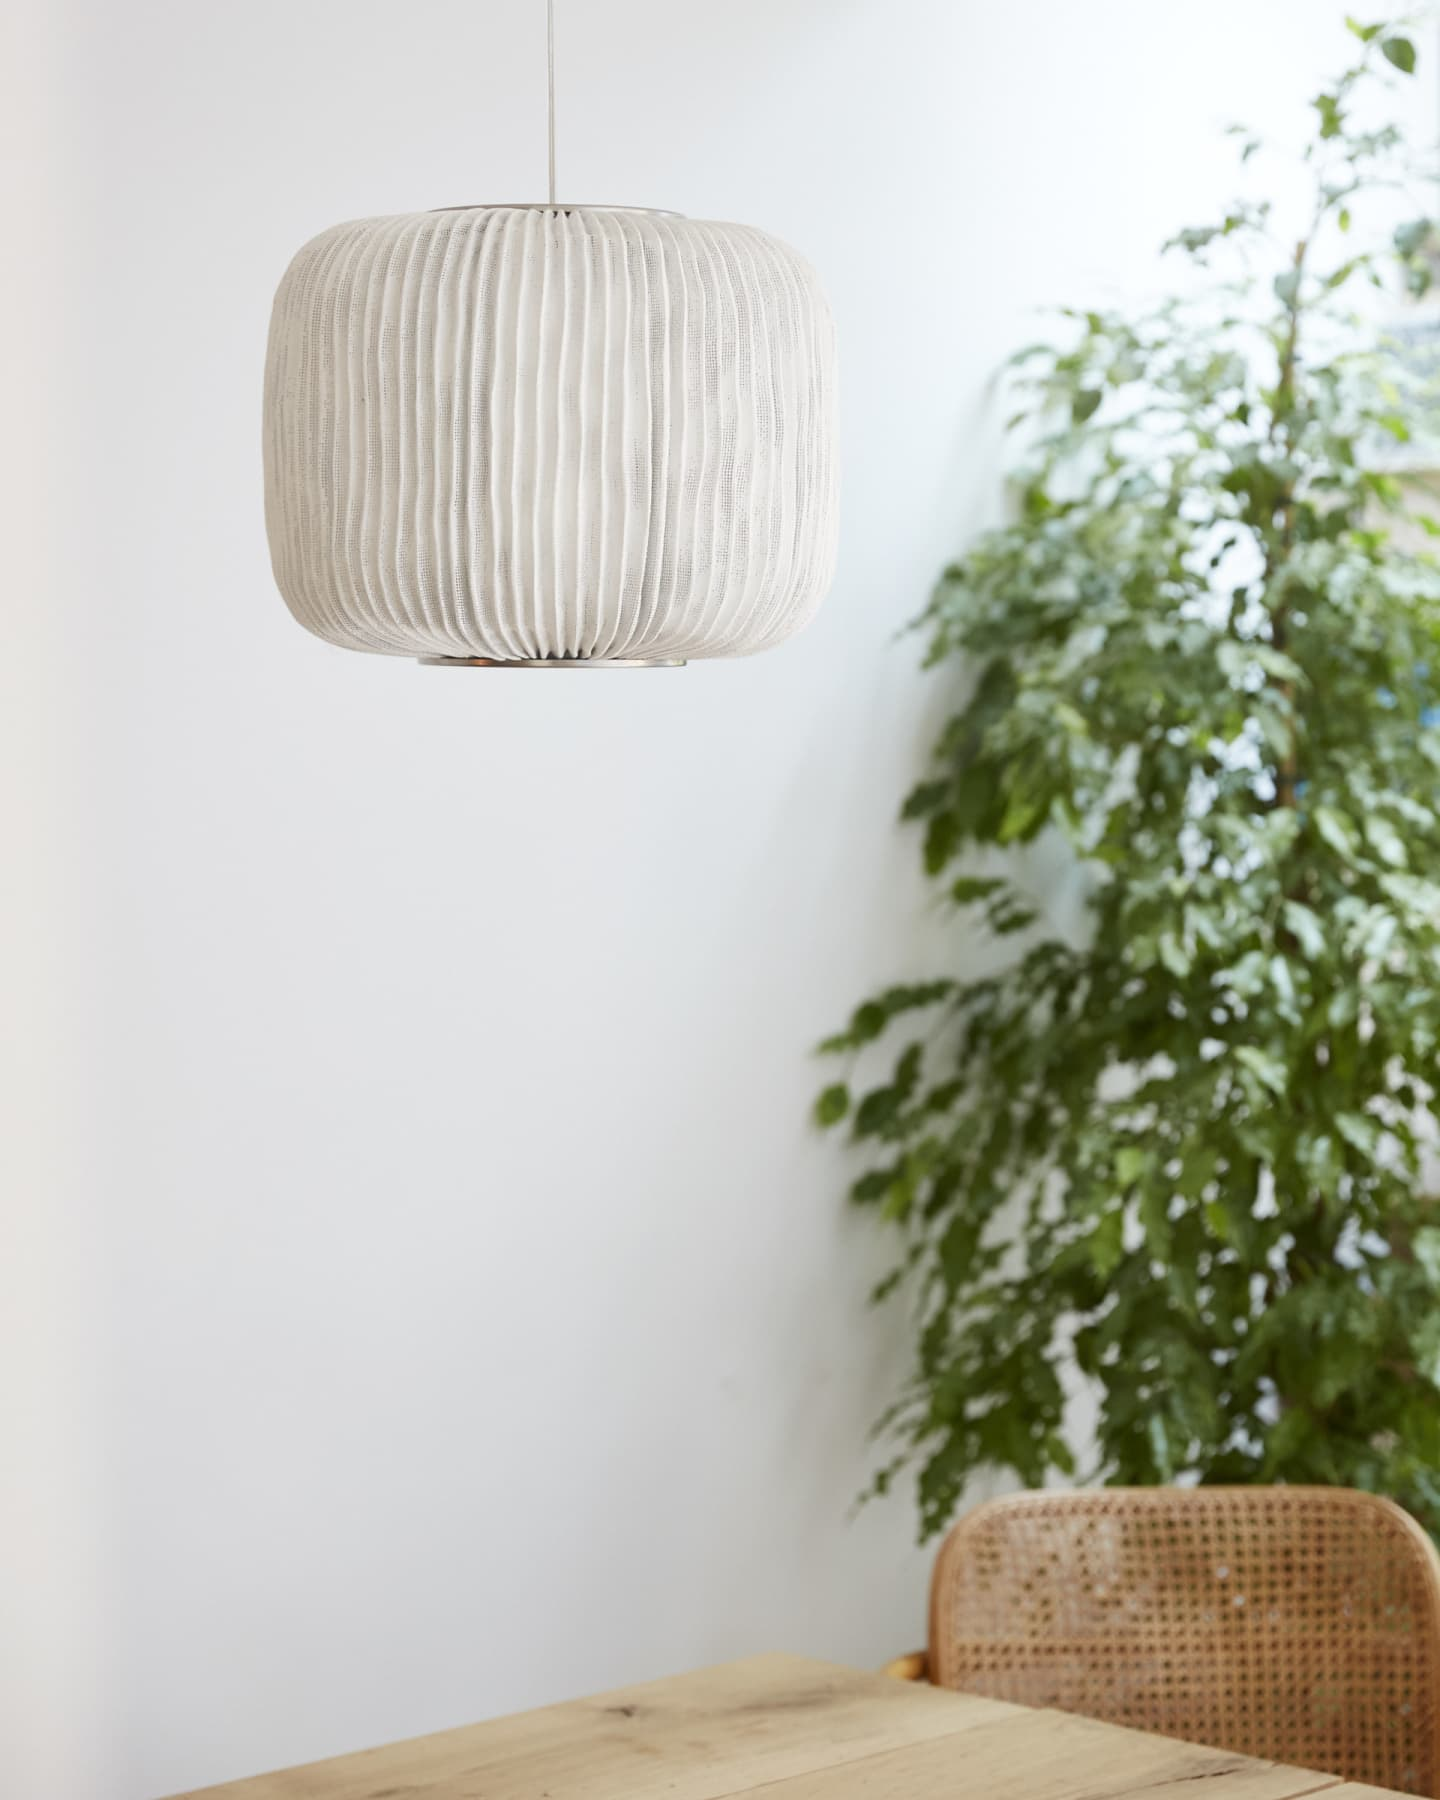 White lamp and wall with green shrub